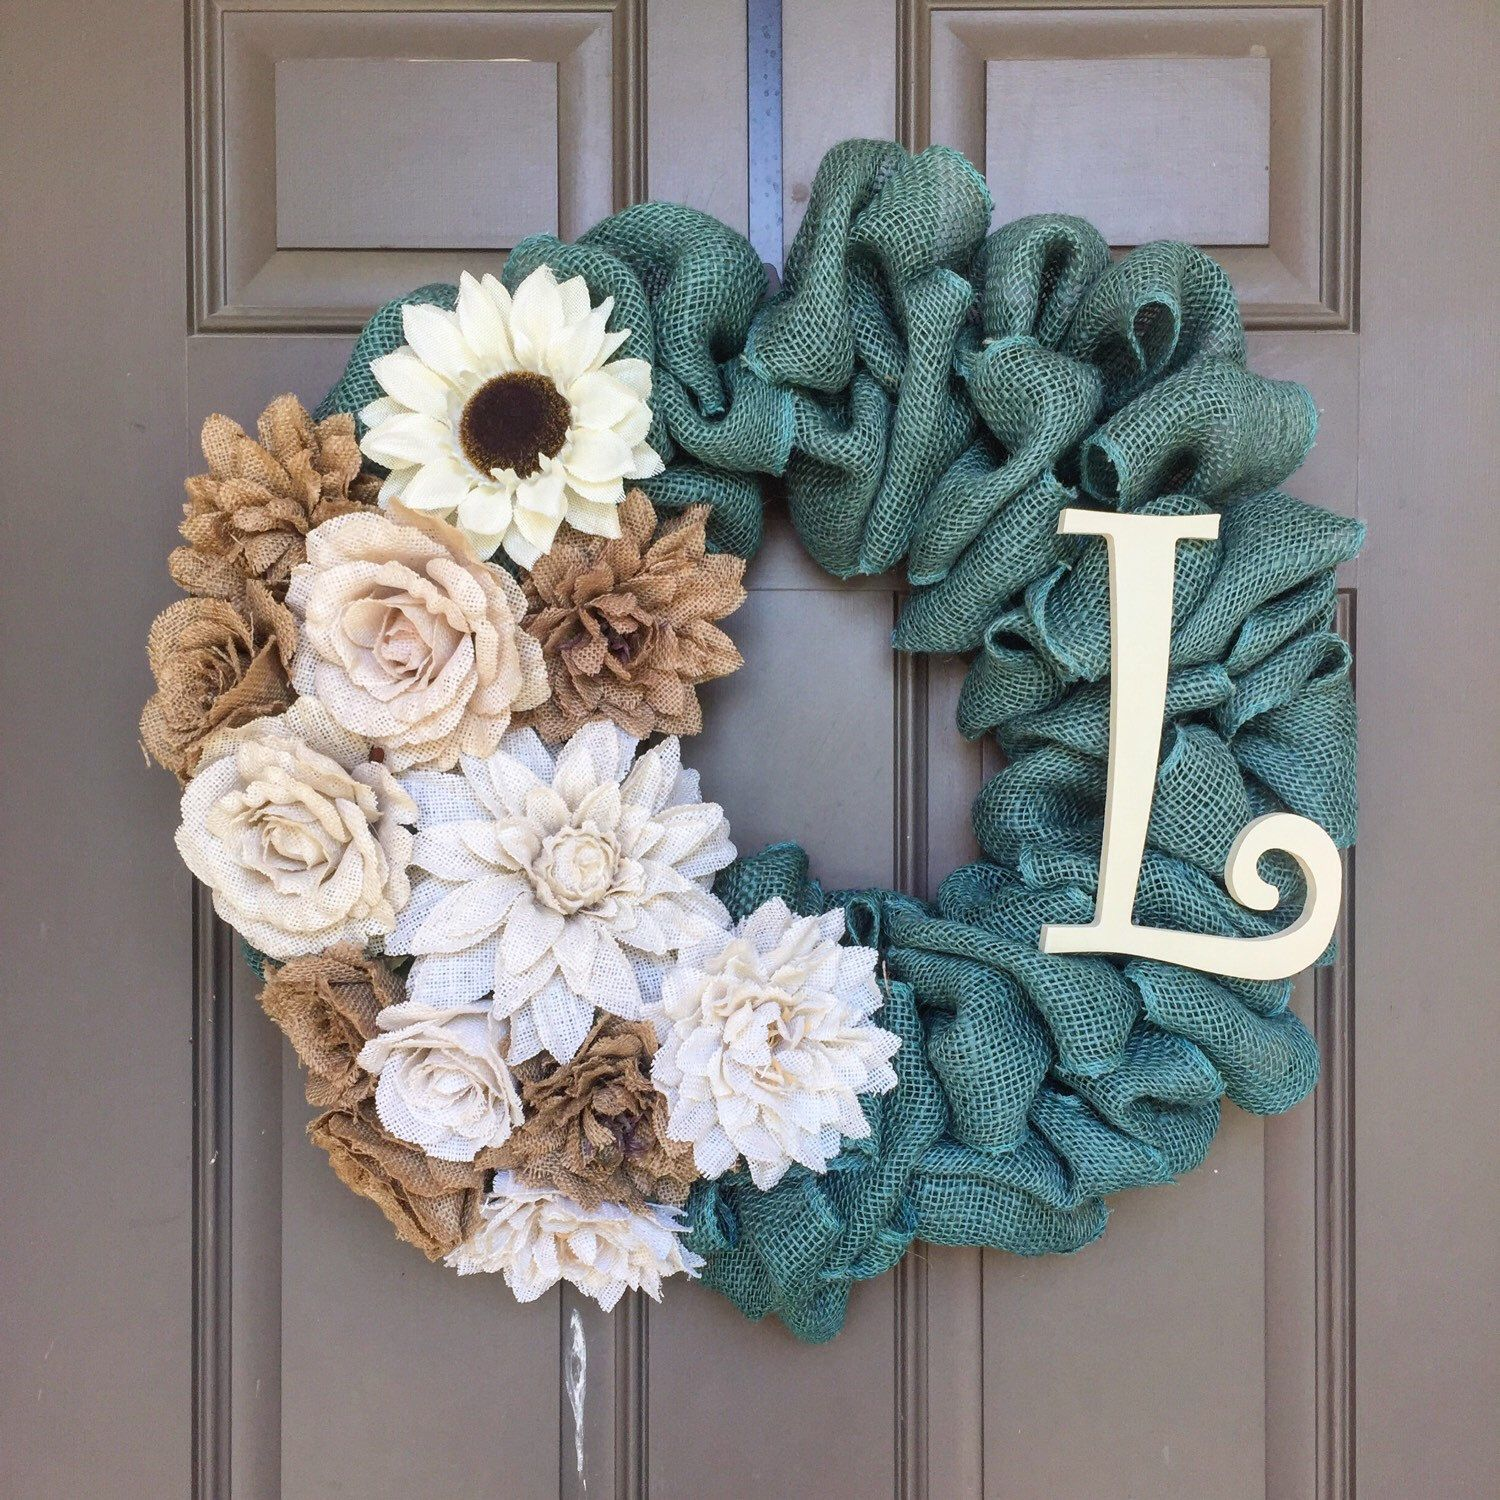 A personalized burlap wreath made with turquoise burlap for Burlap designs